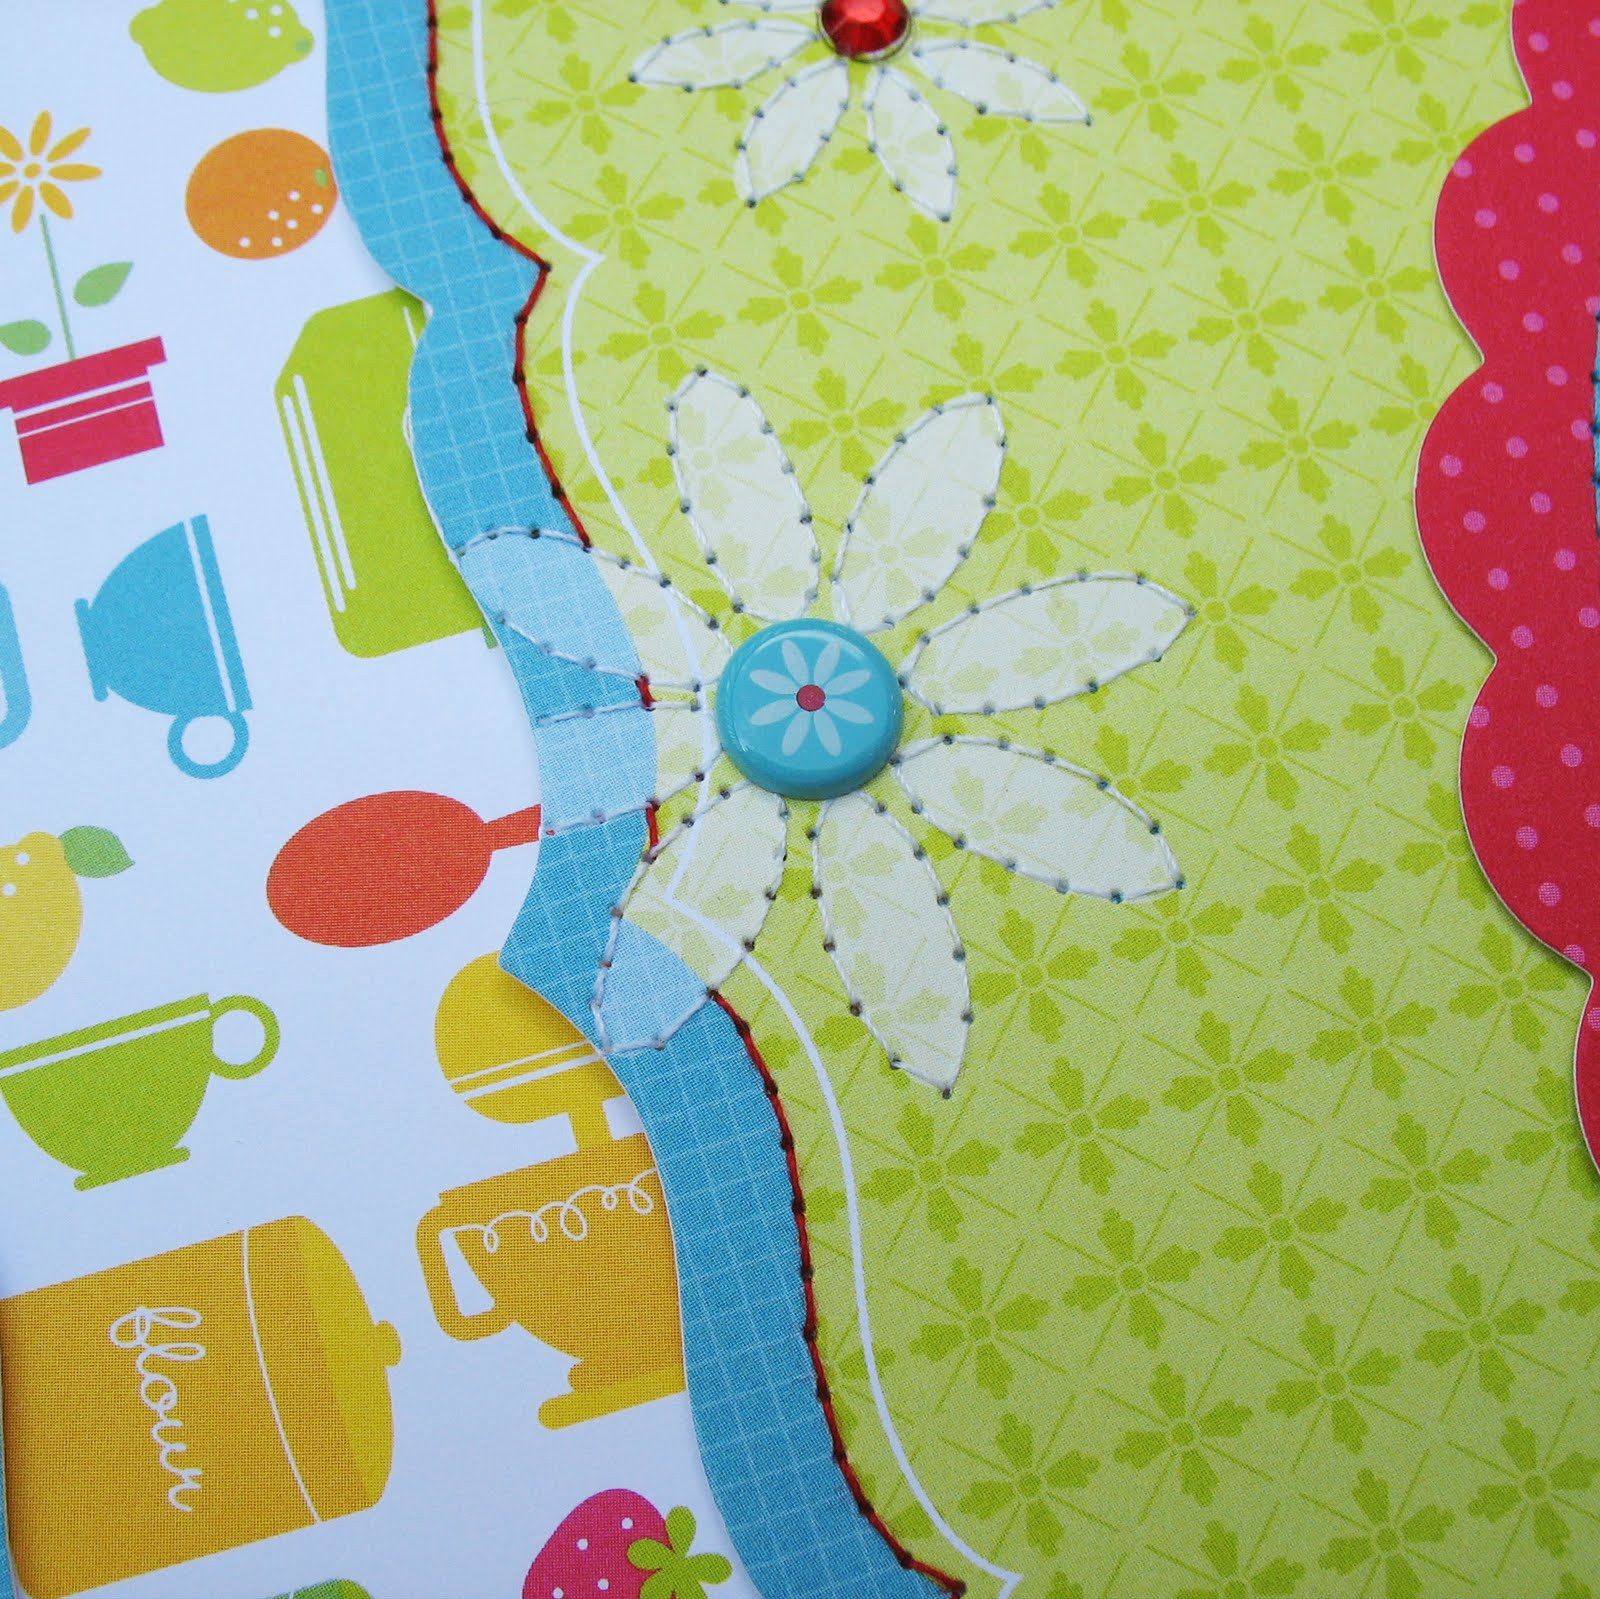 Scrapbook paper cooking - Not Only Do I Love Cooking But I Love Stitching So I Outlined The Flowers And Border On This Patterned Paper